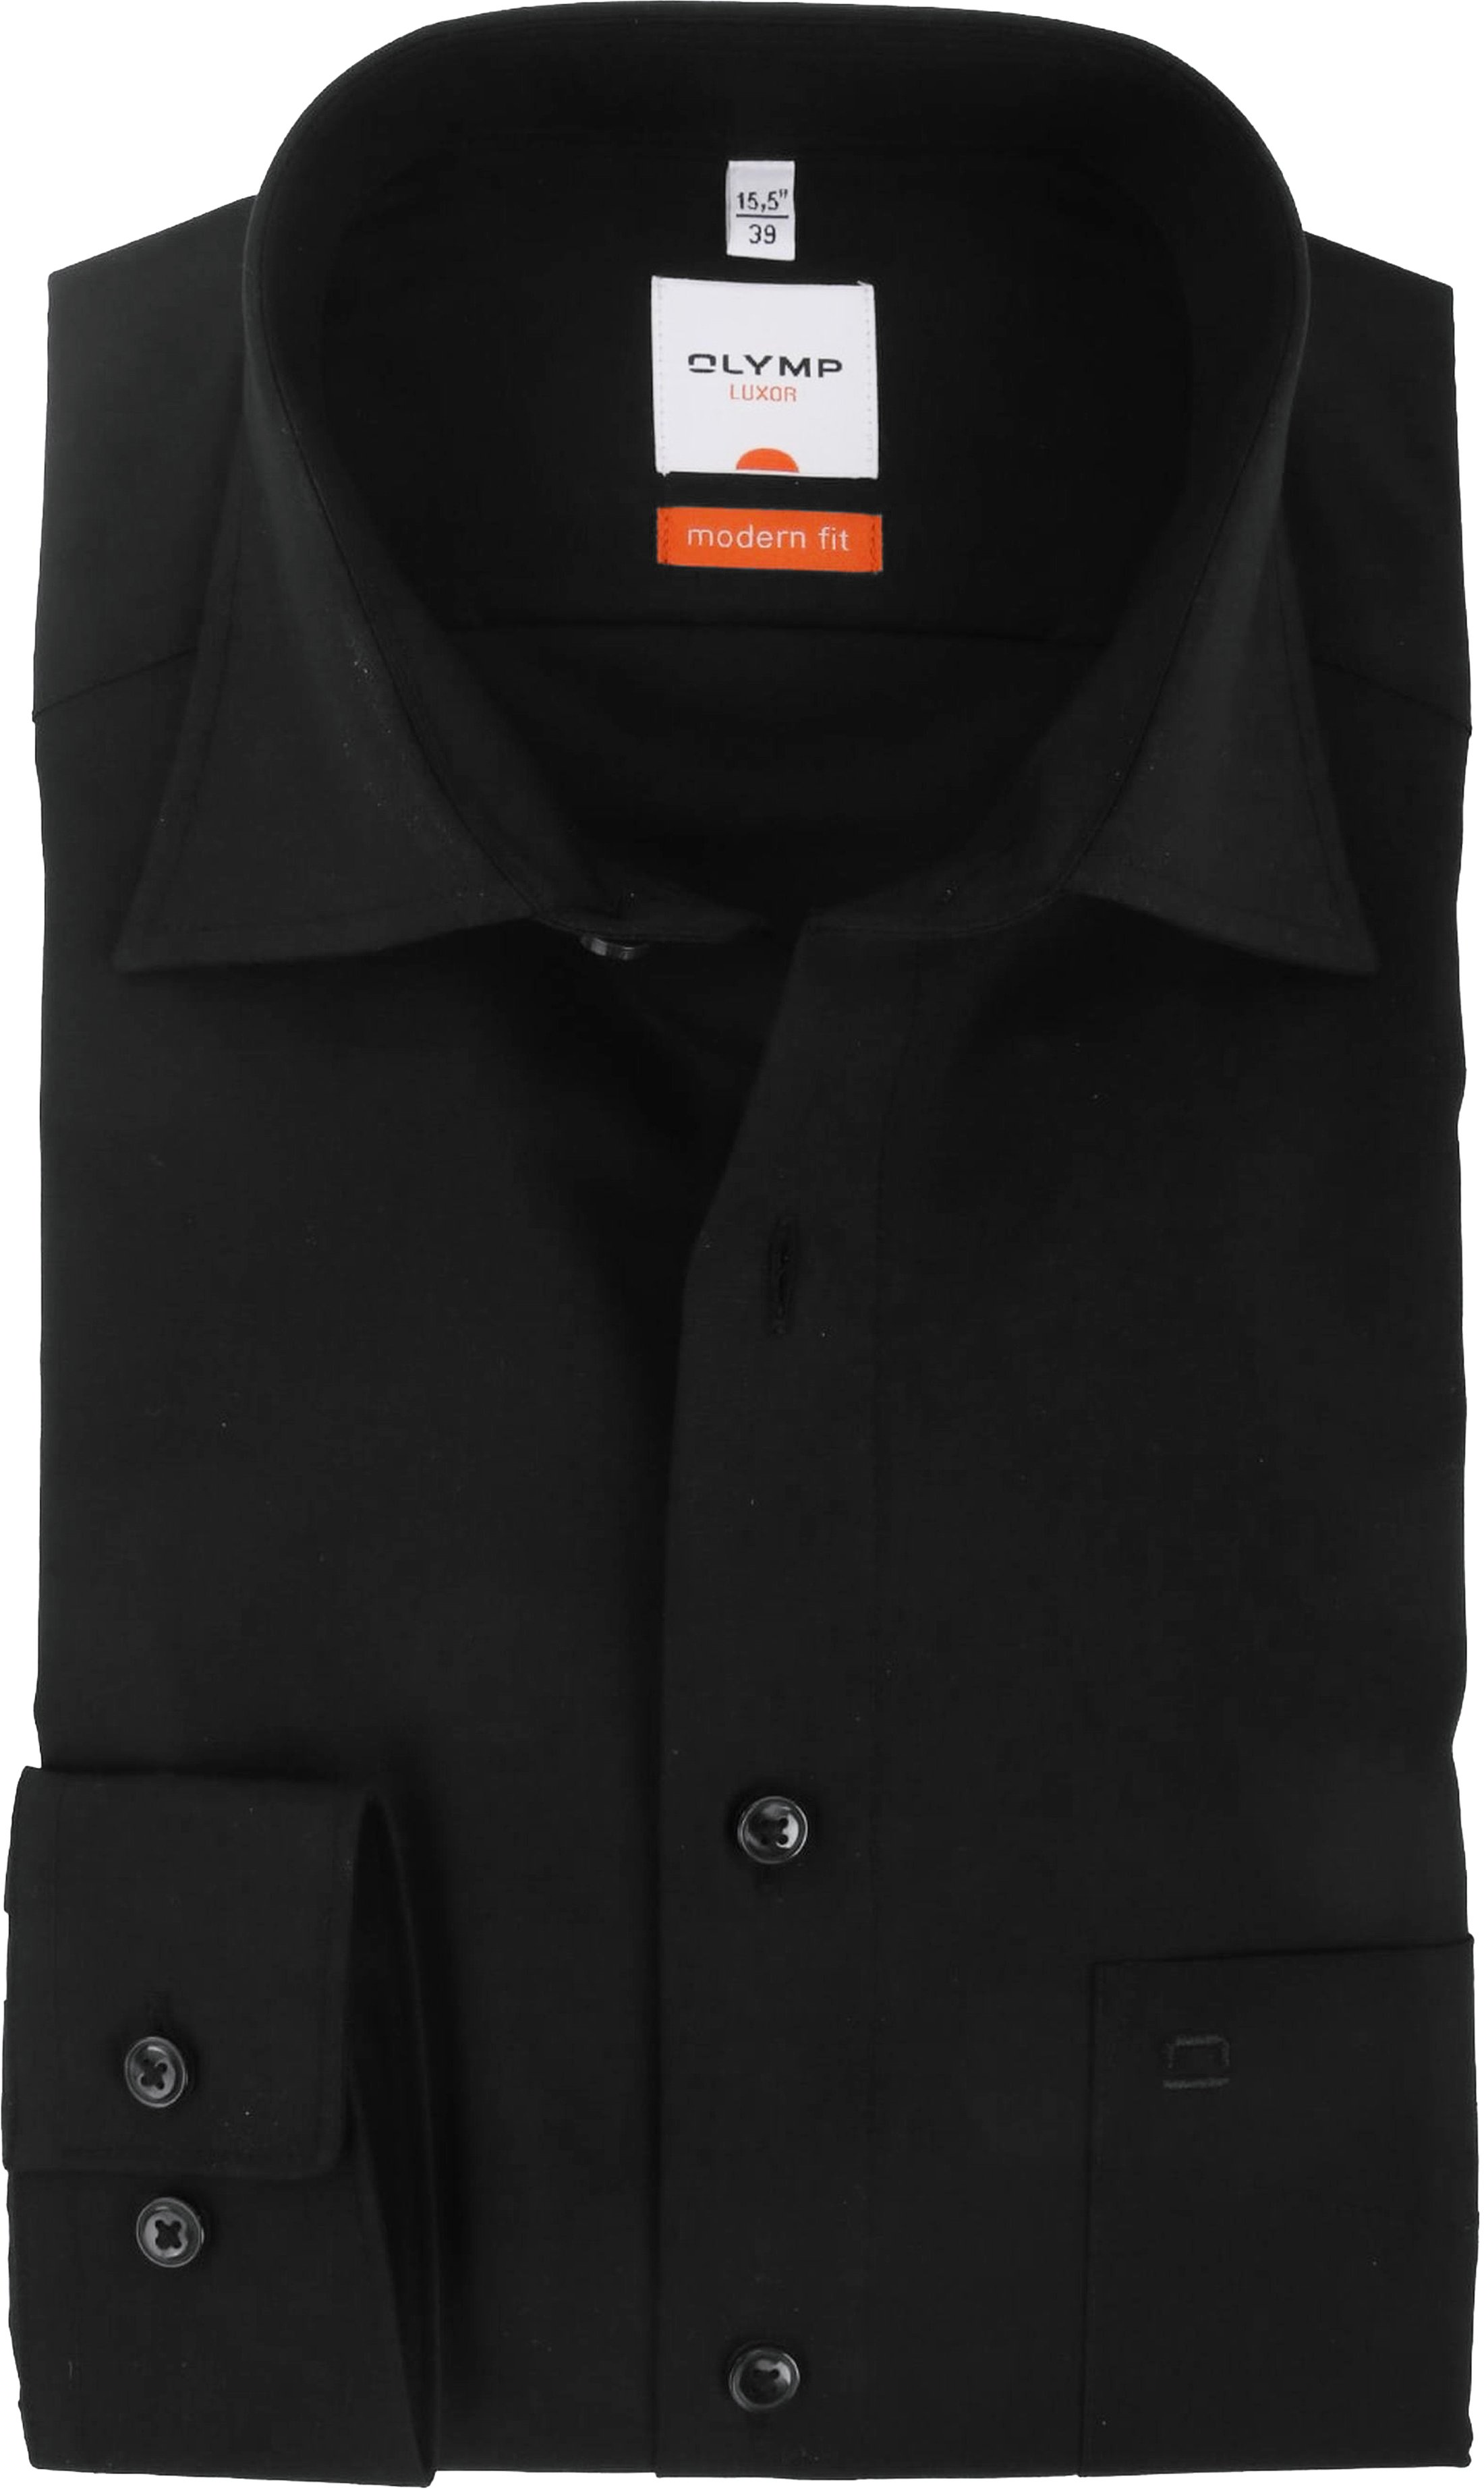 Olymp Luxor Shirt Black Modern Fit